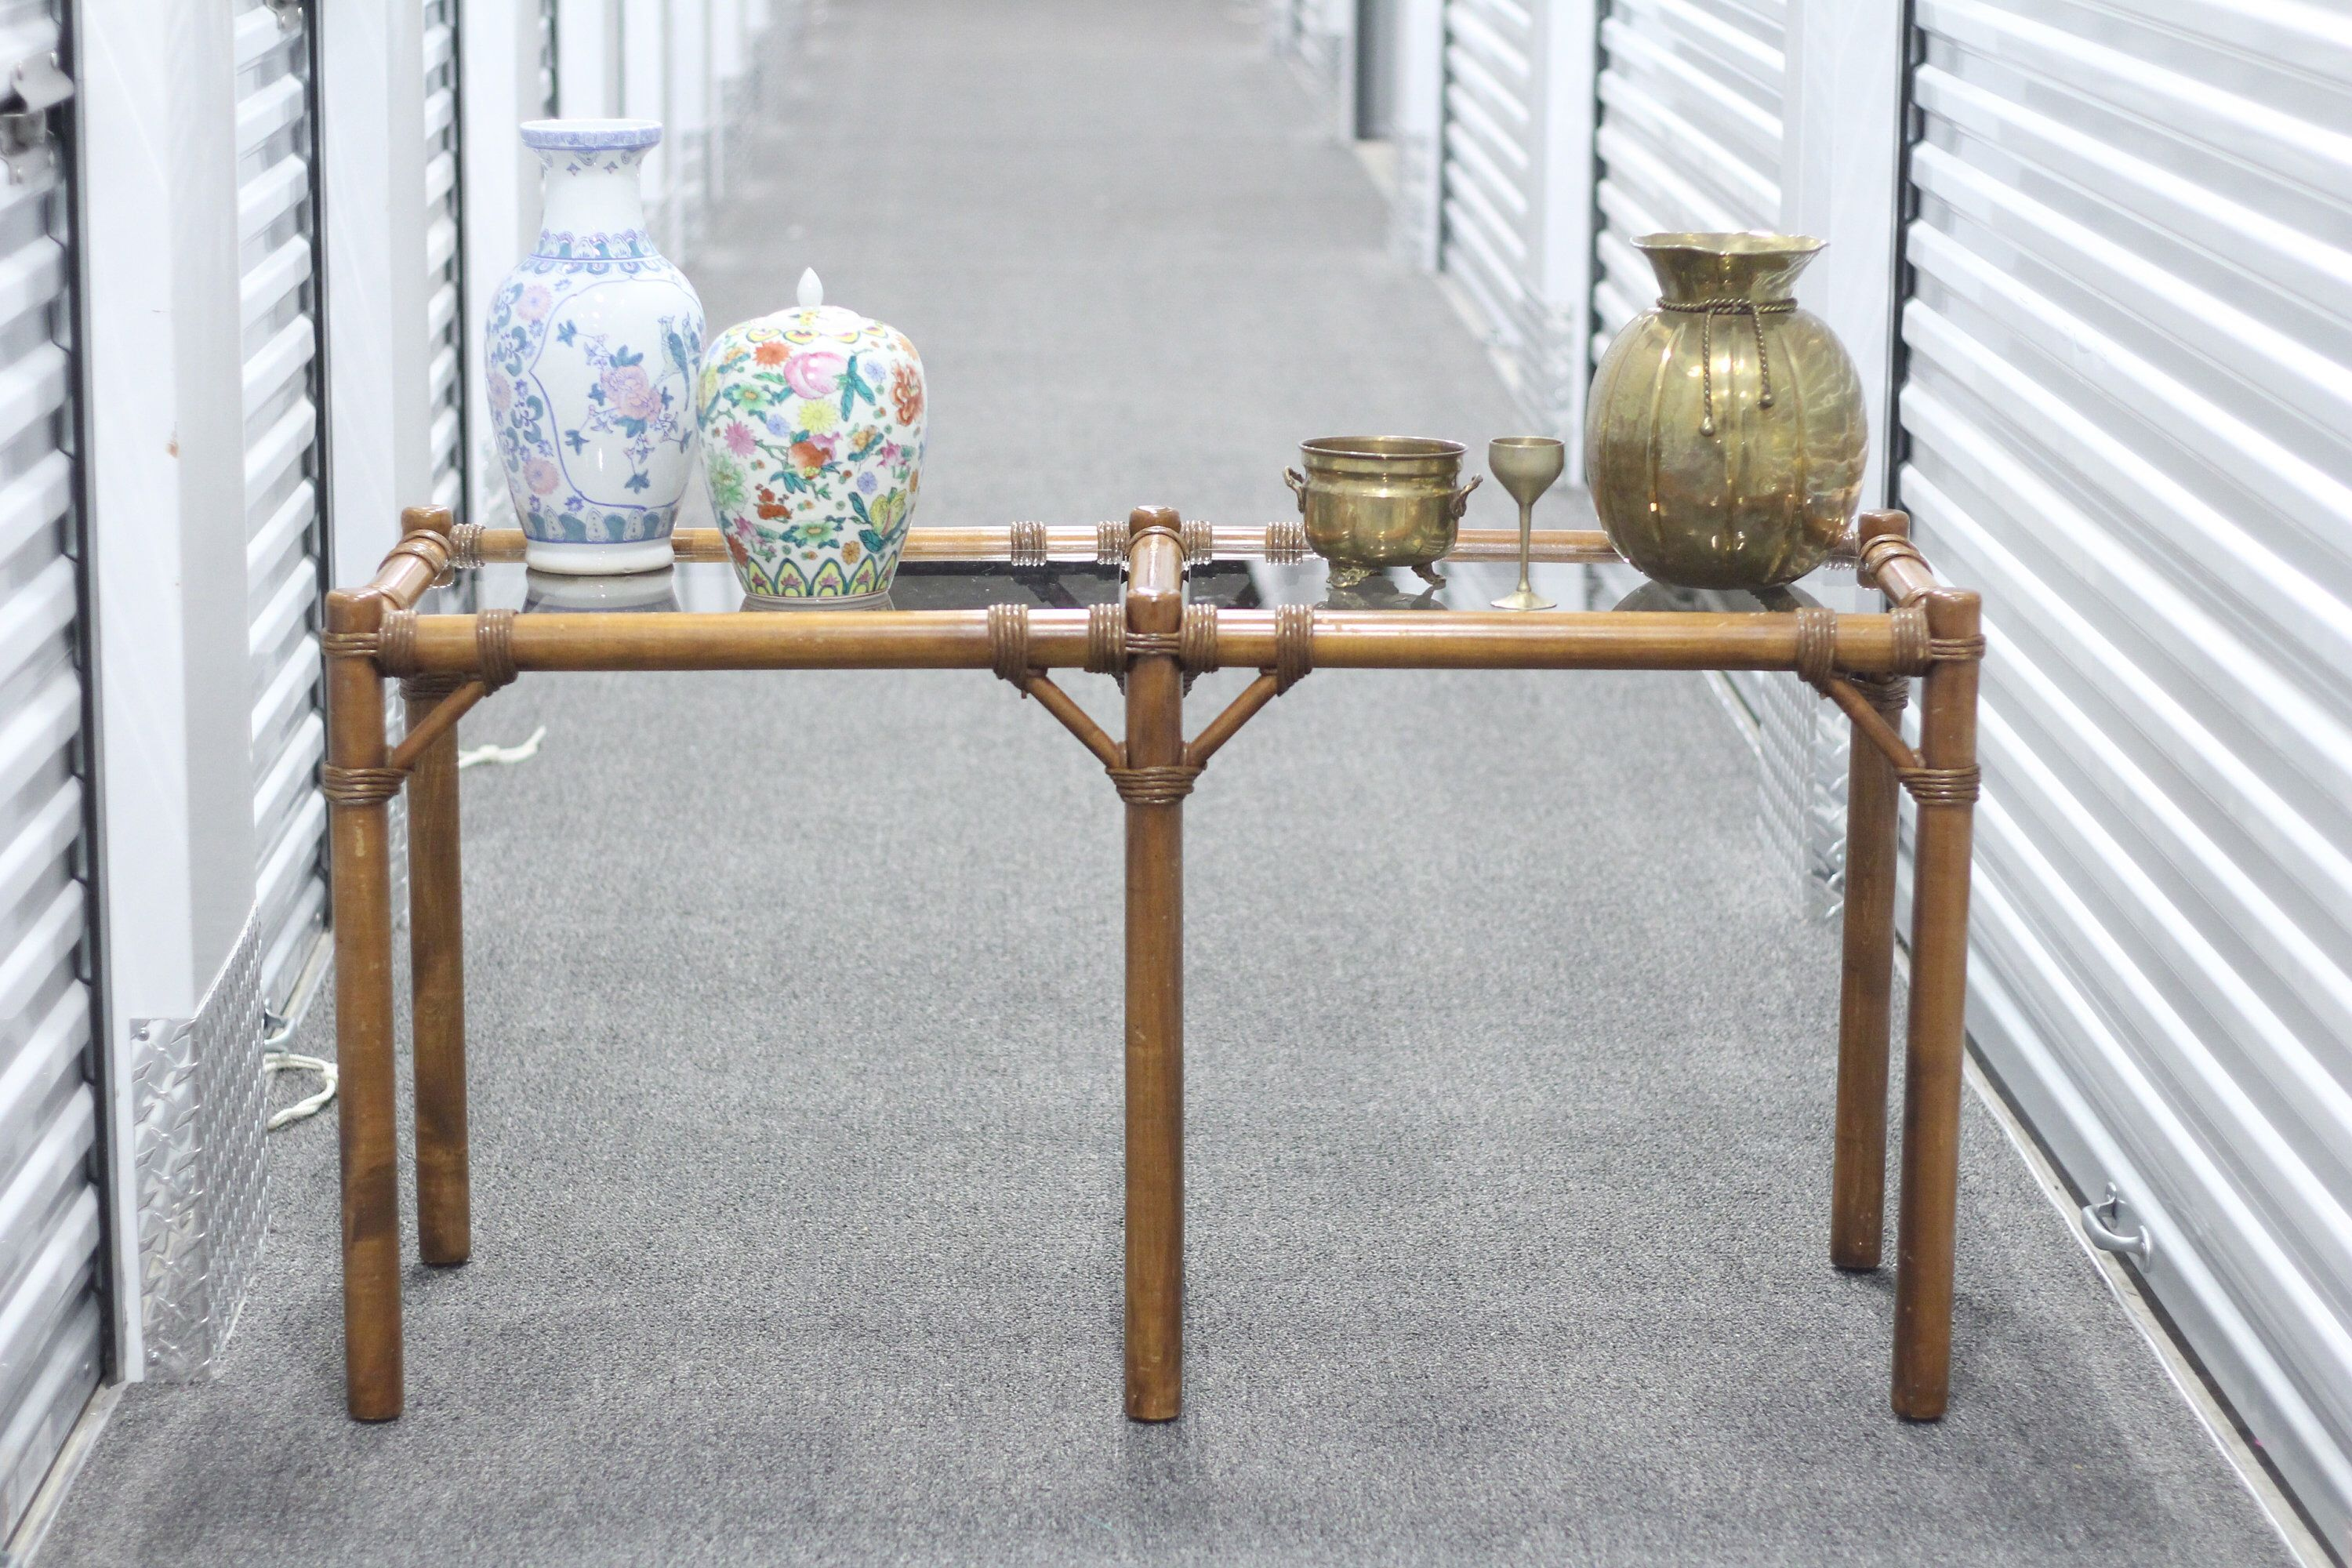 Photo of Vintage Console Table / Sofa Table With Glass / Bamboo Table / Boho Style Entryway Table